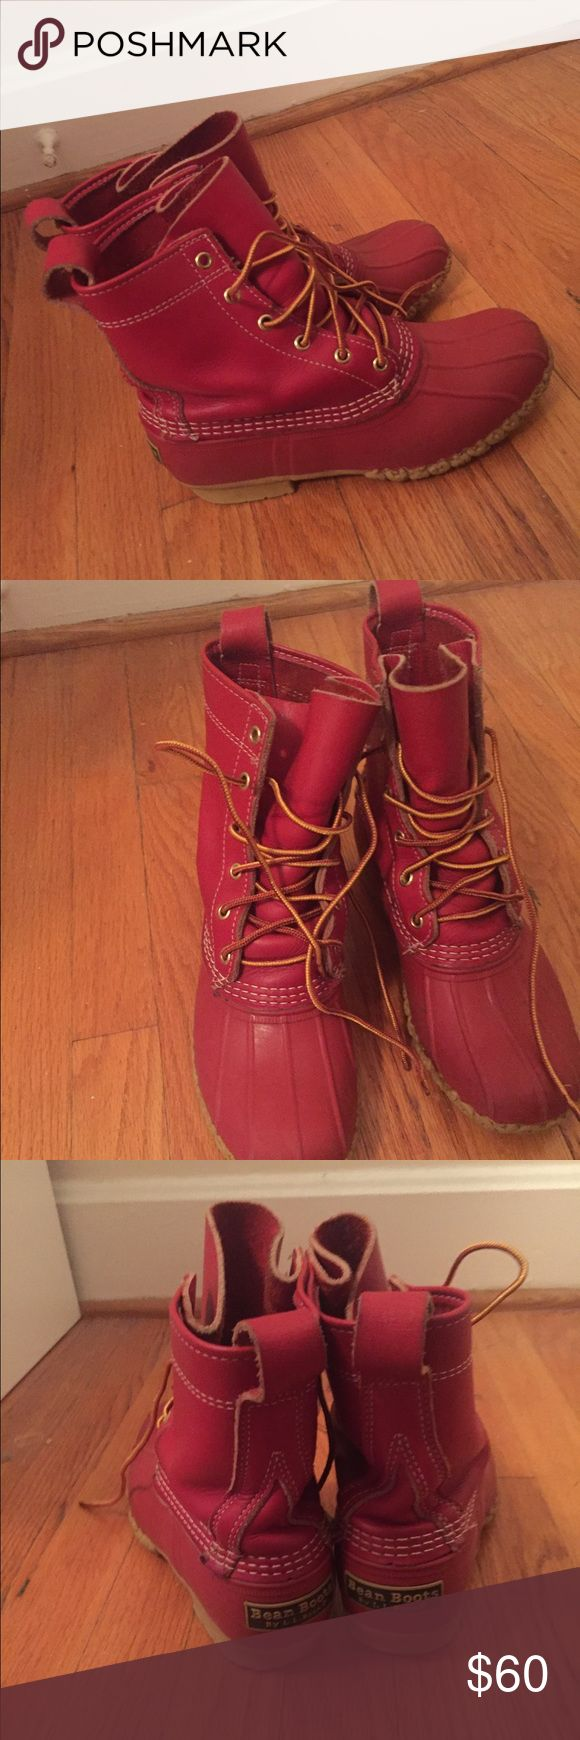 Red LL Bean Boots (women's 8) Women's 8 red LL bean boots- special edition. Fit true to size. In great condition, only worn a few times LL Bean Shoes Winter & Rain Boots